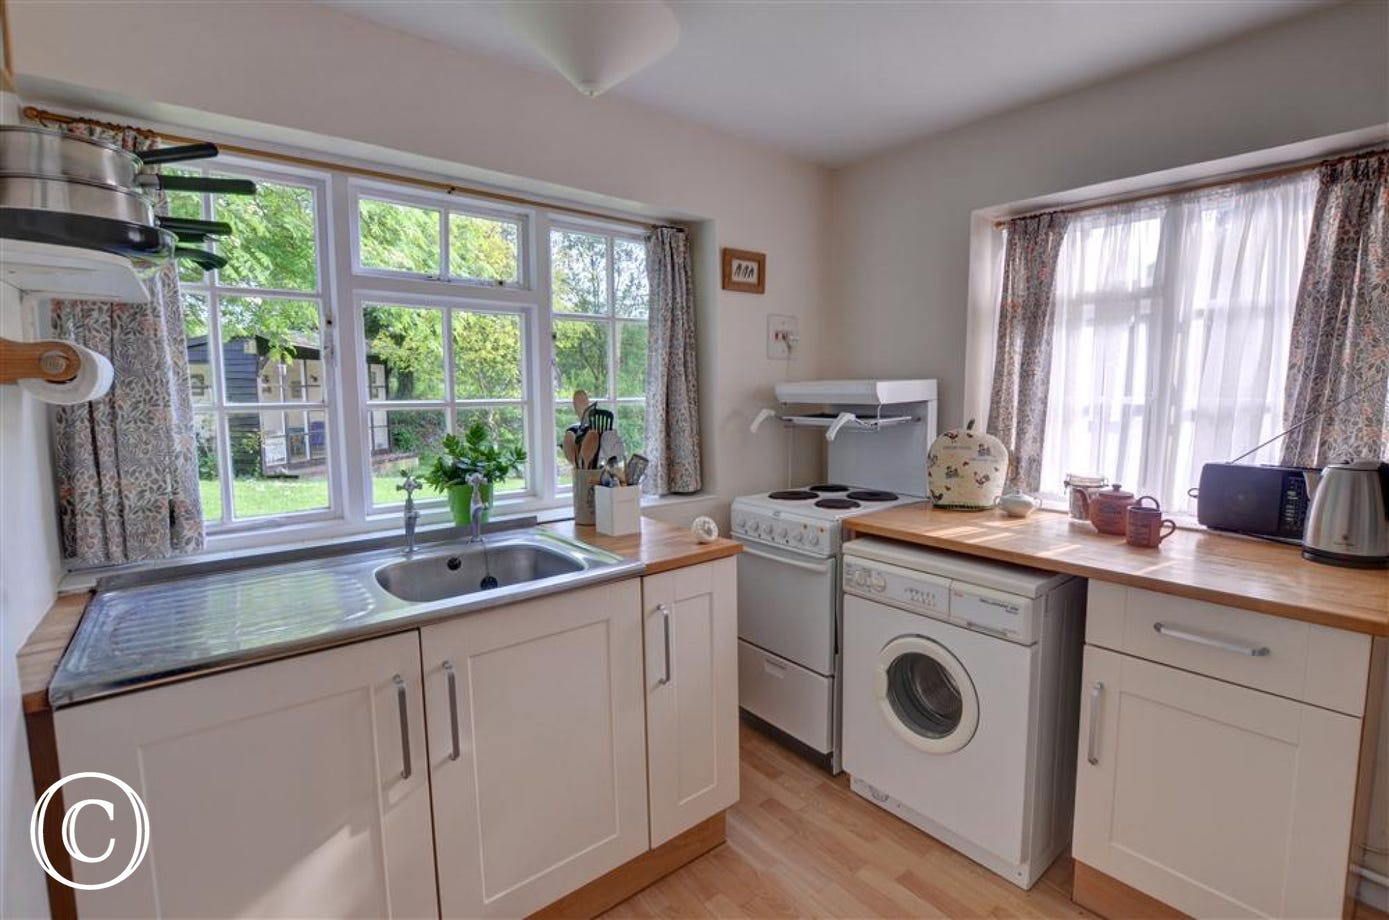 Enjoy cooking in this modest but functional kitchen whilst staying at Apple Tree Cottage.